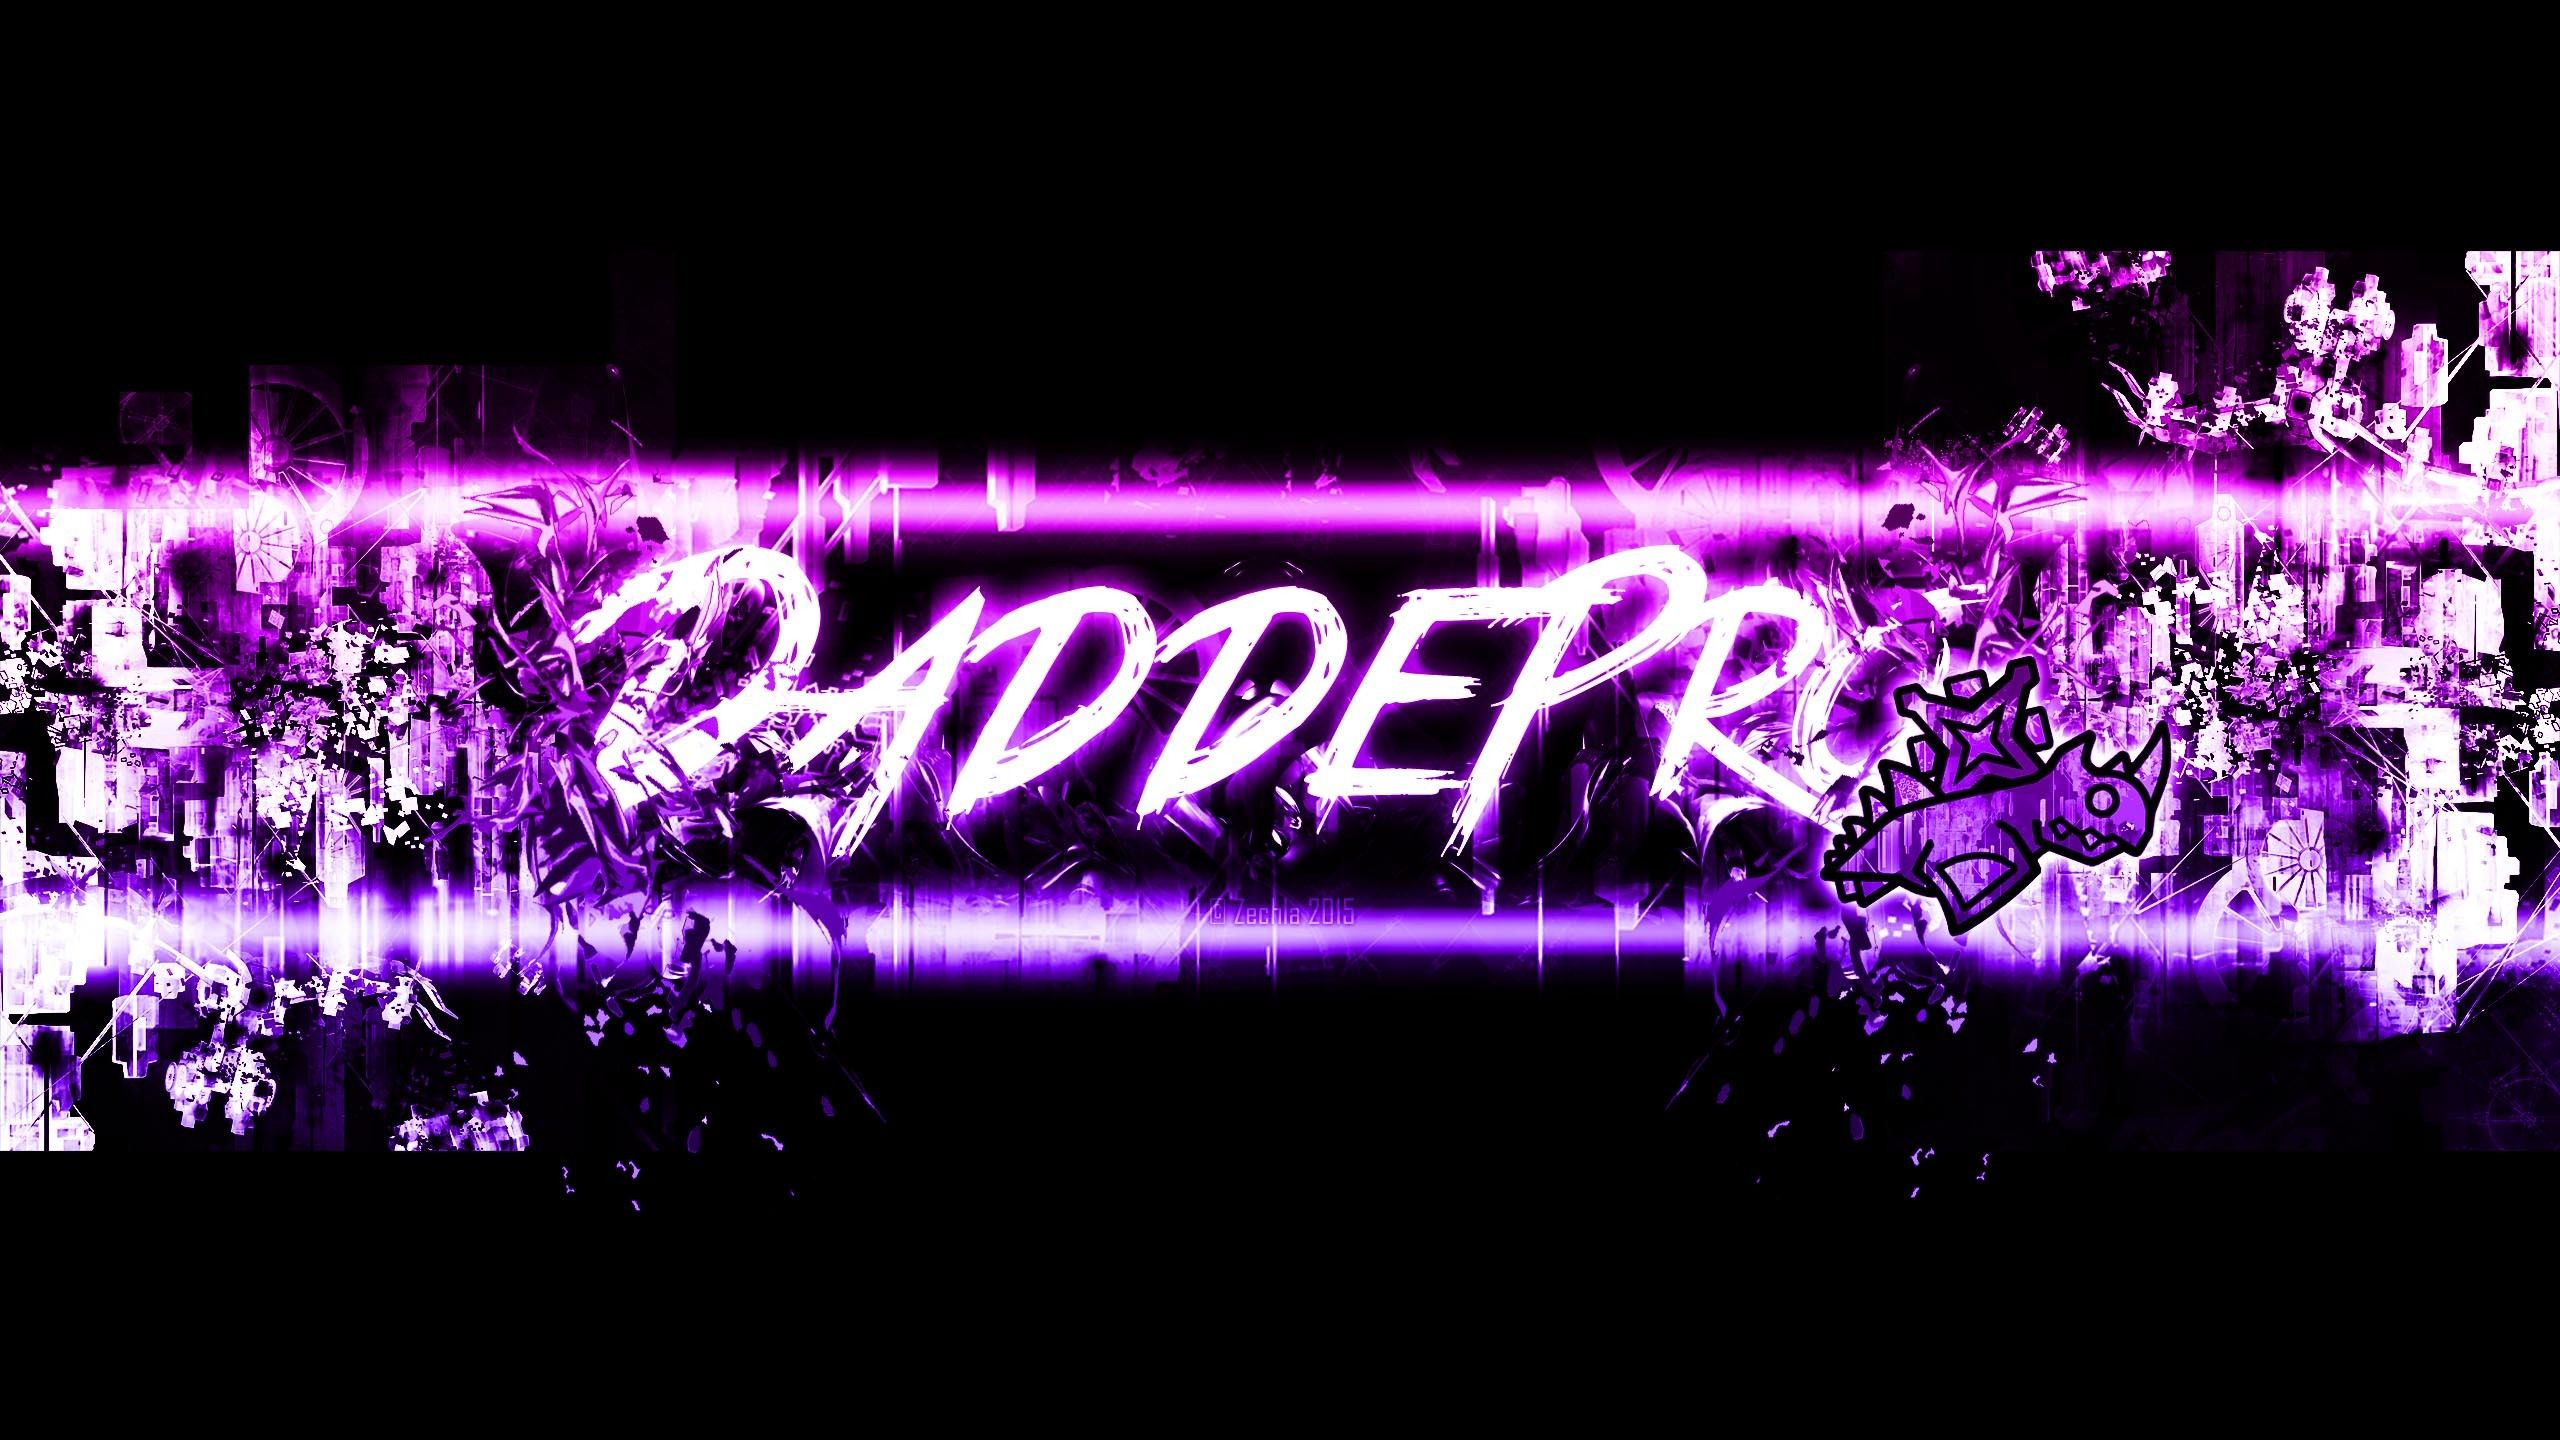 2560x1440 Dash Daddepro S Youtube Banner Youtube Banners Banner Wallpaper